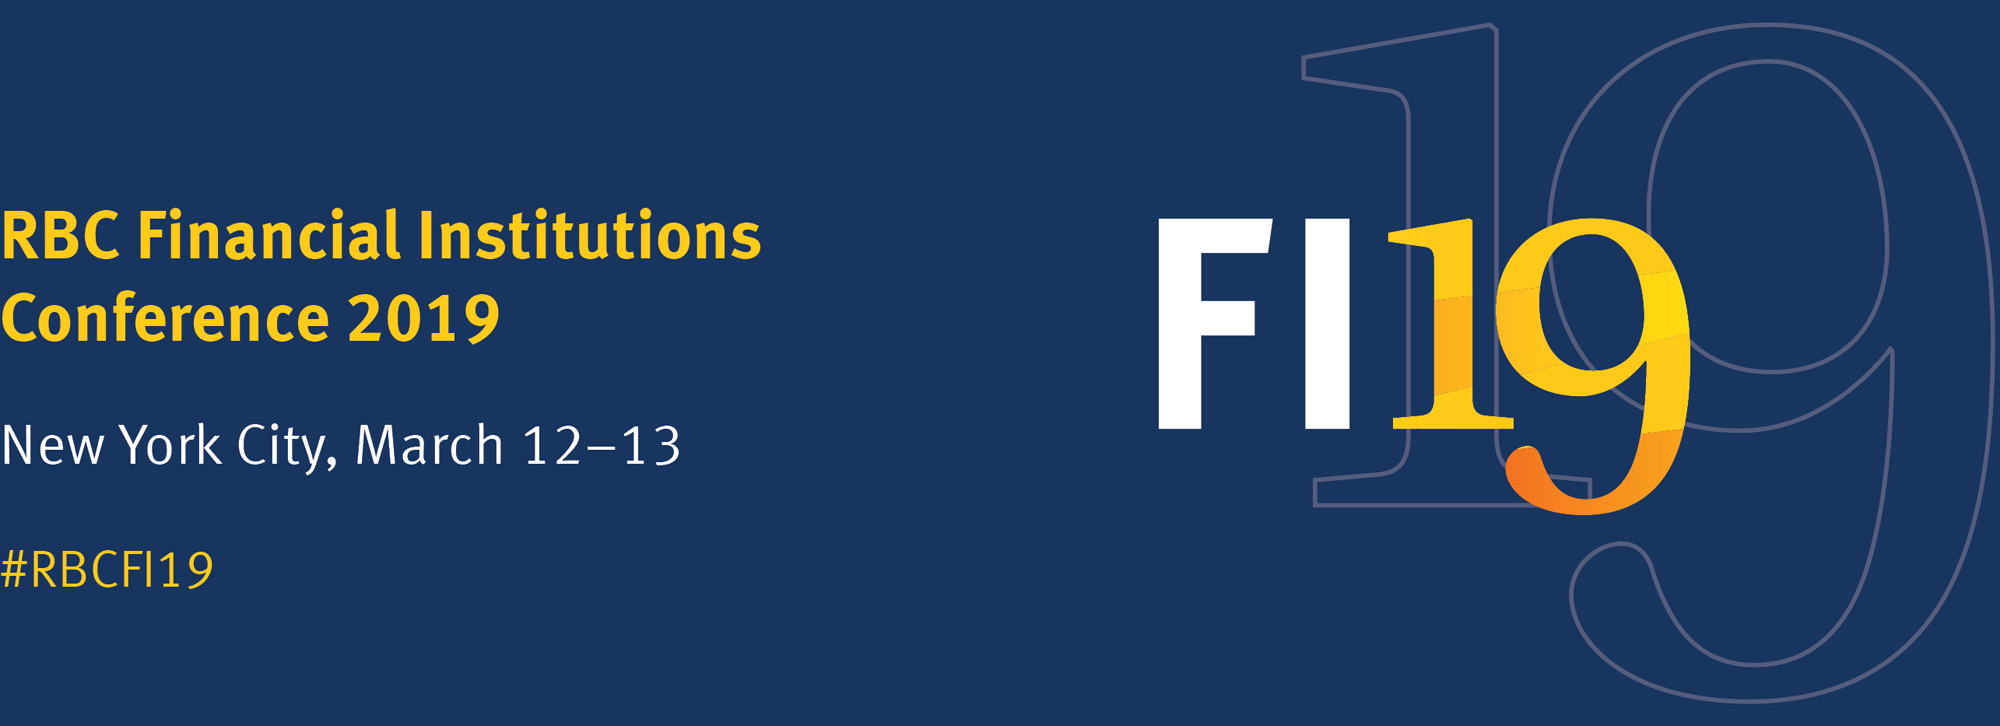 RBC Financial Institutions Conference 2019 | New York City, March 12-13 | #RBCFI19